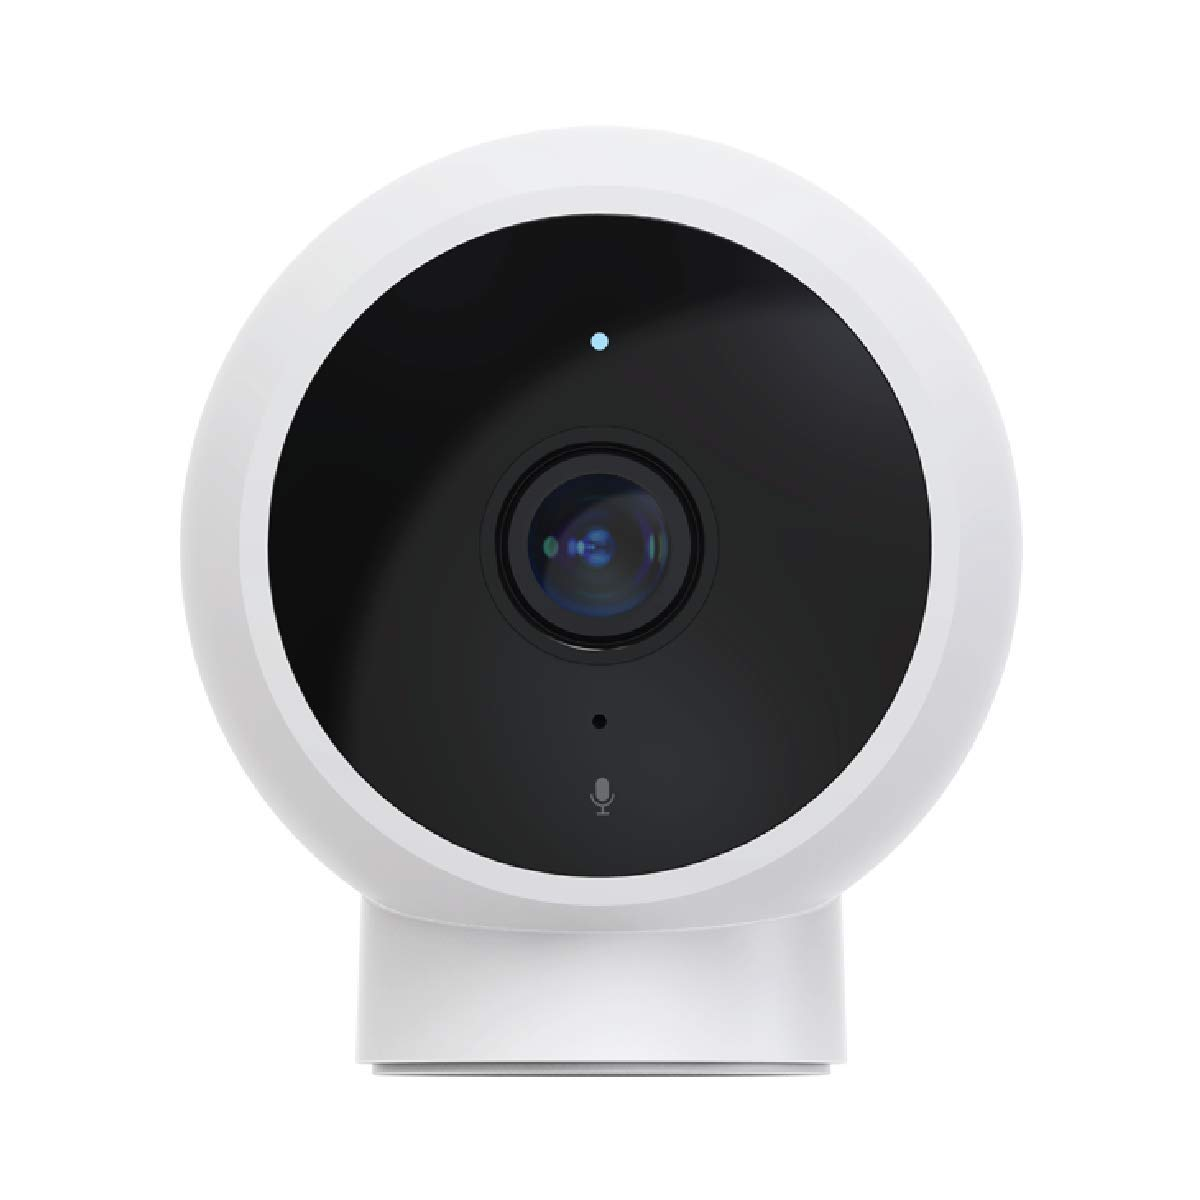 CÁMARA WiFi DE Seguridad XIAOMI Mi Home Security Camera 1080P - Soporte MAGNETICO - IP65 - Vision Nocturna - DETECCION MOVIMIENT